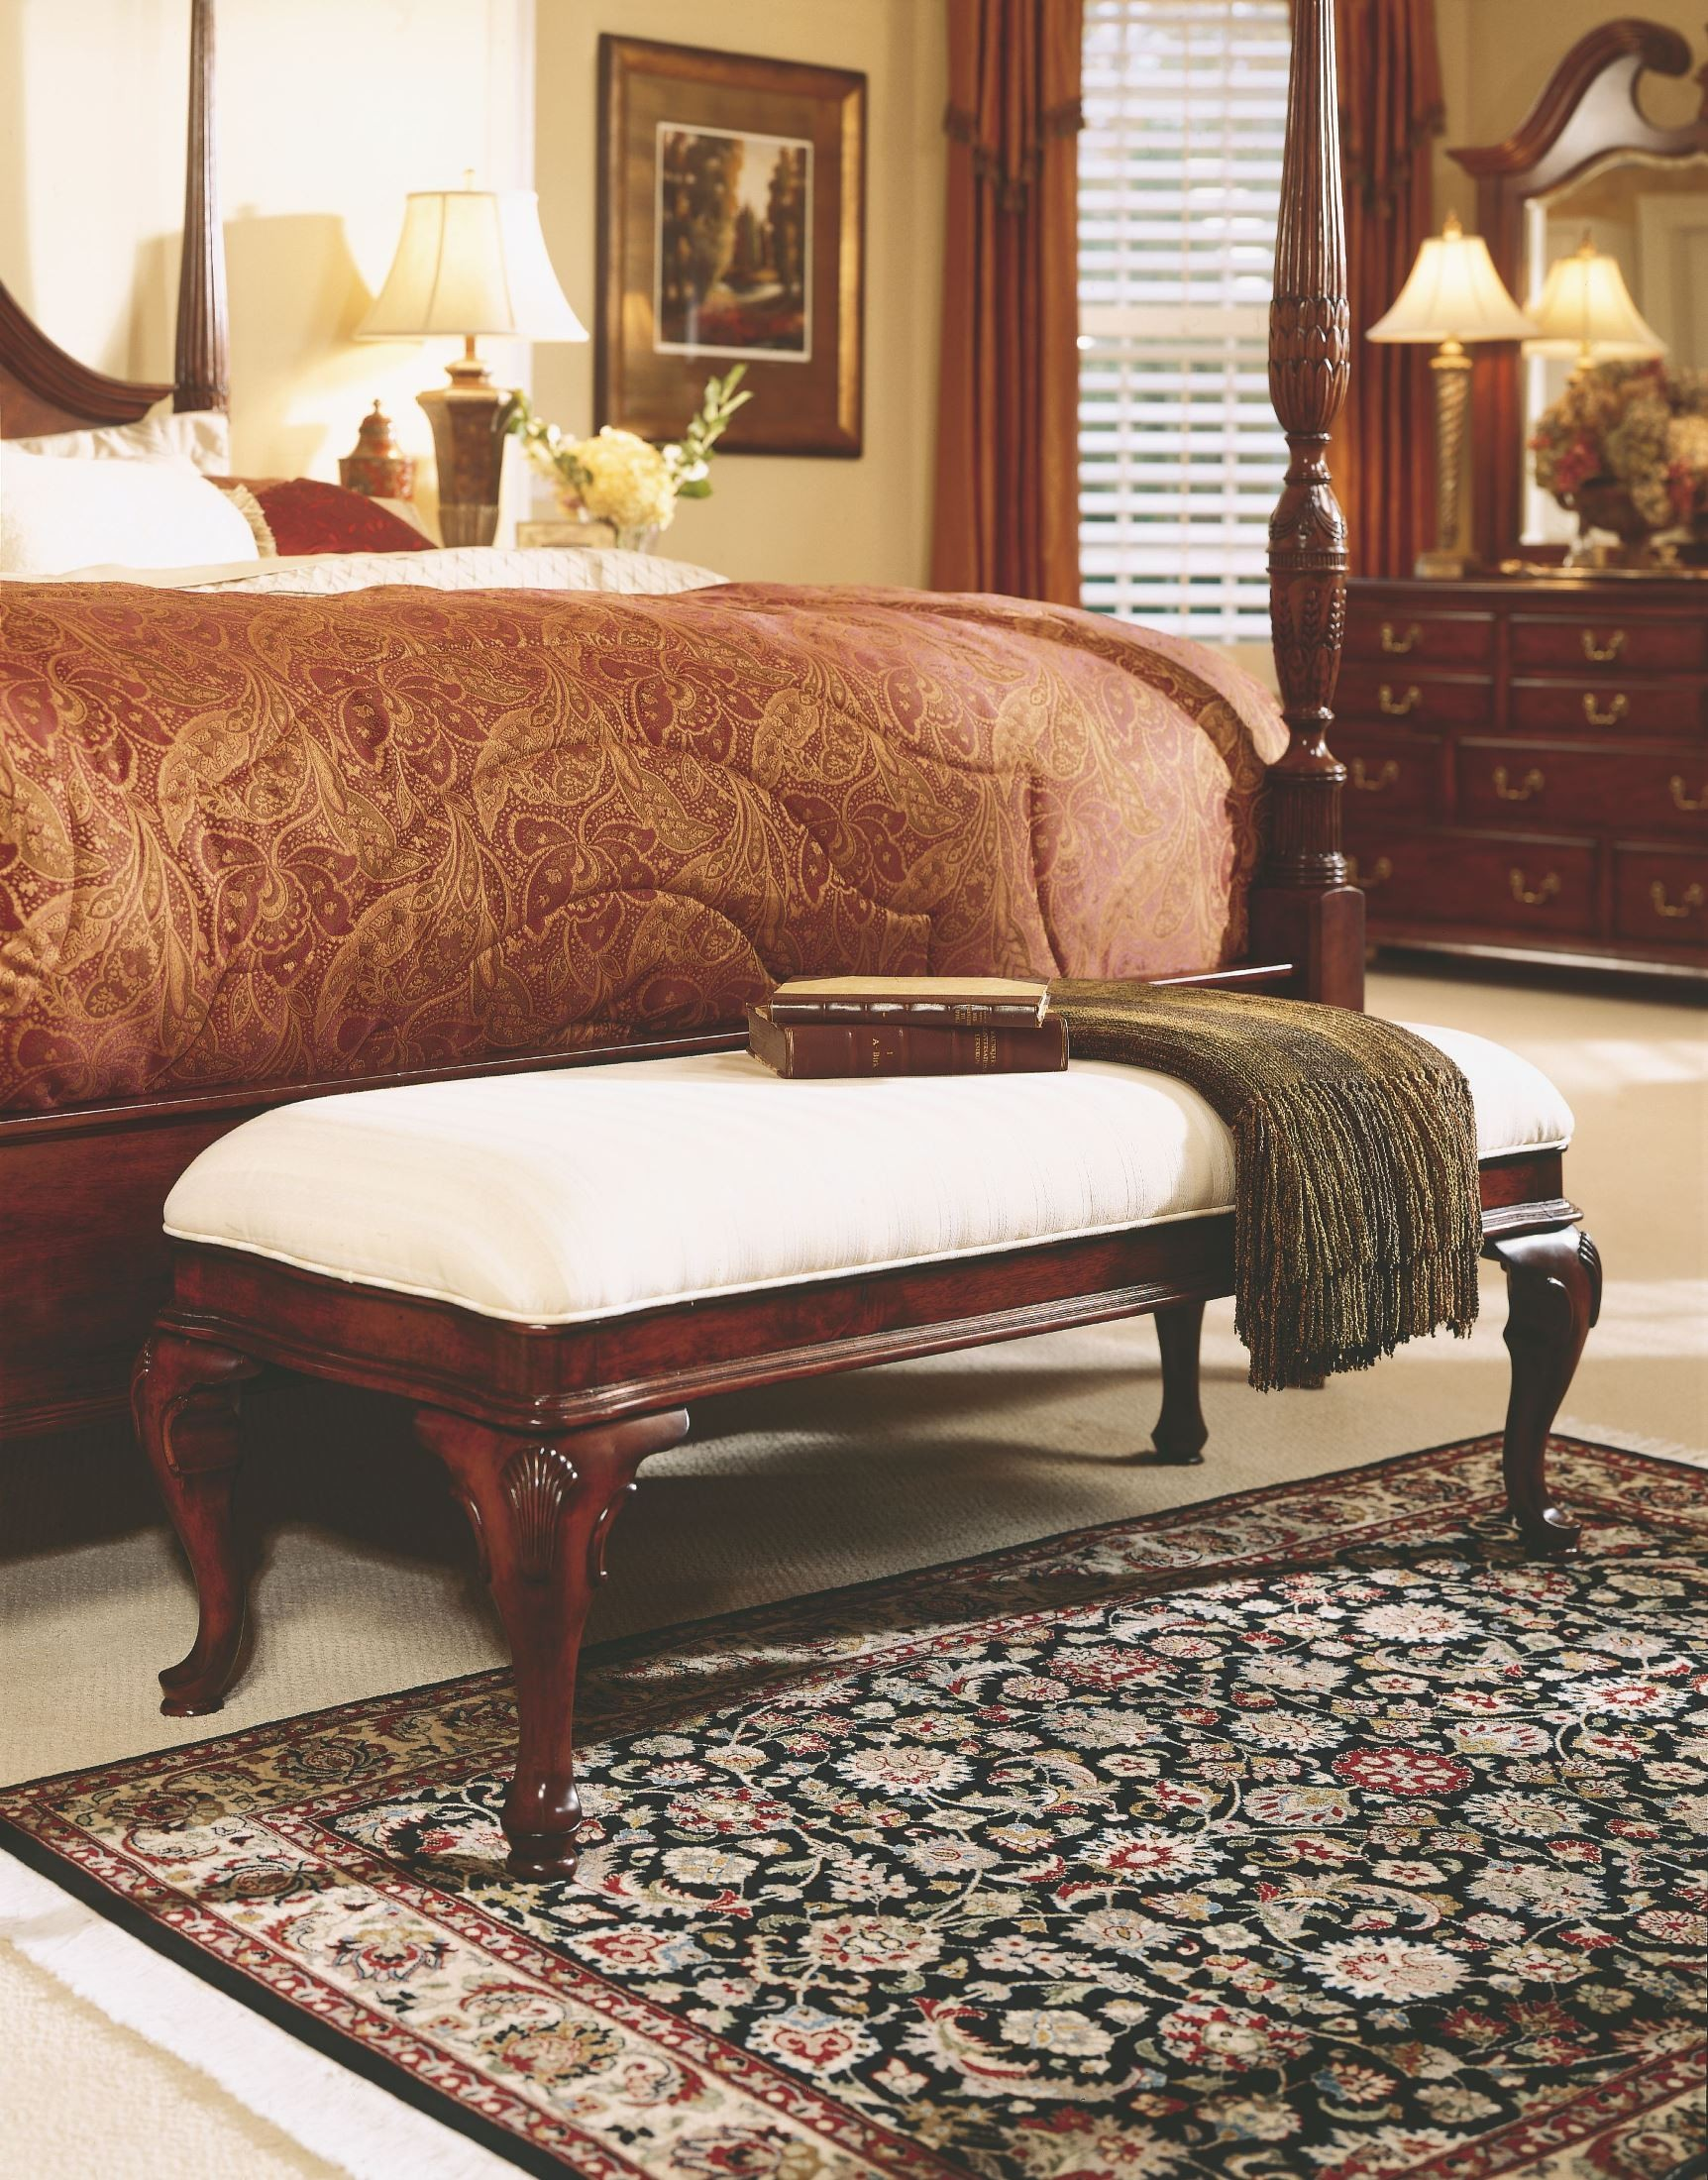 Cherry Grove Classic Antique Cherry Bed Bench From